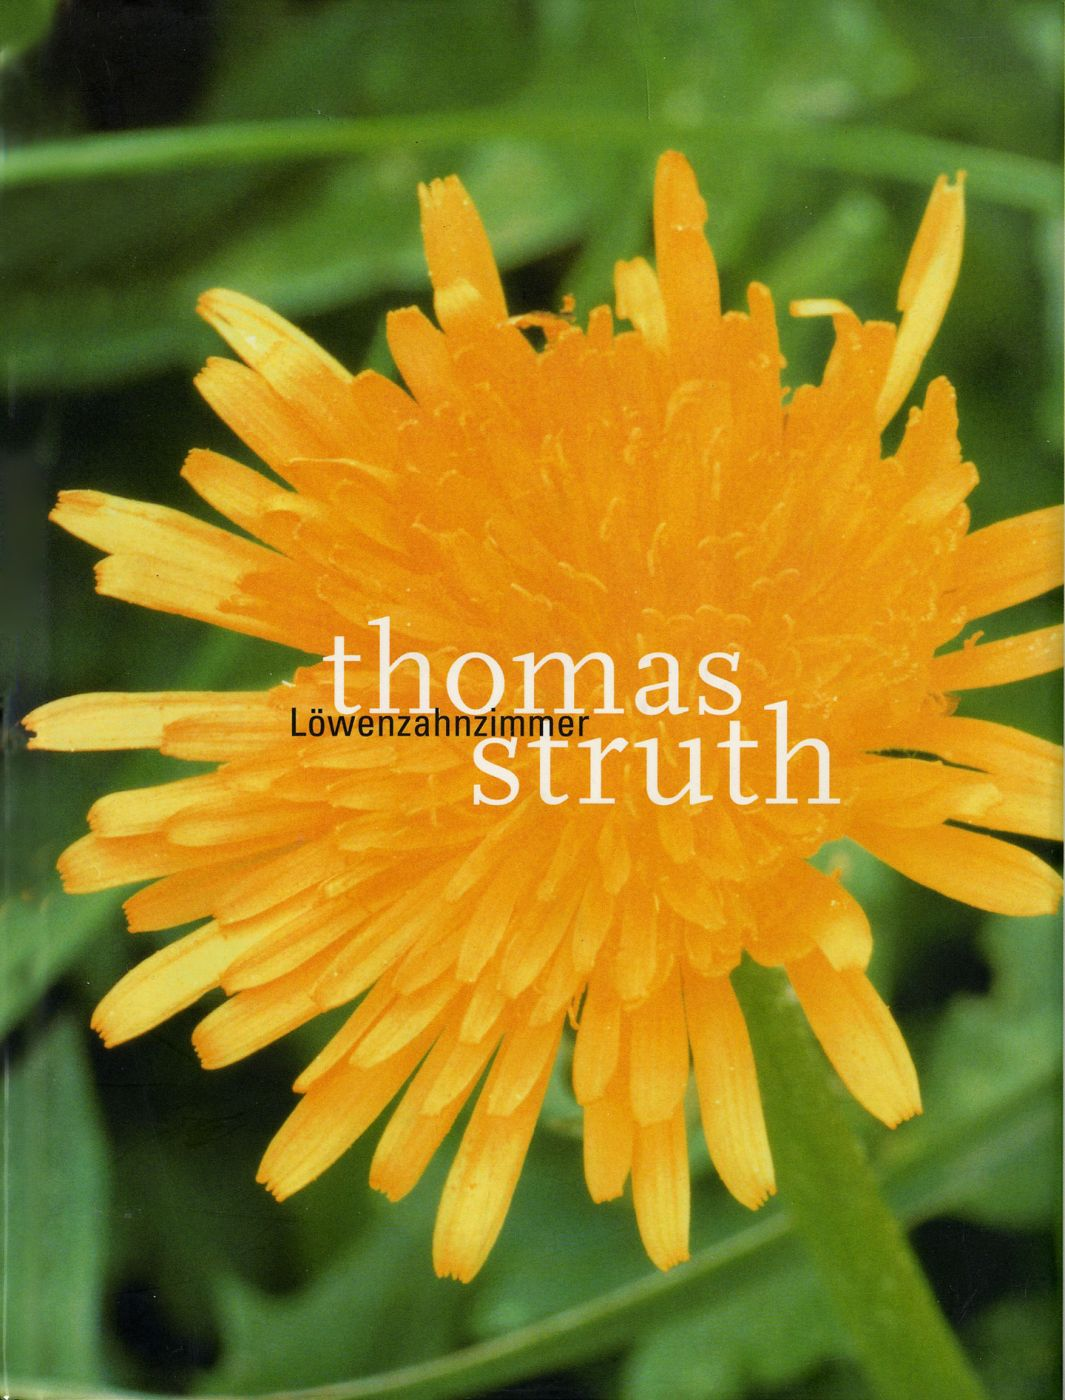 Thomas Struth: Löwenzahnzimmer (The Dandelion Room) [SIGNED]